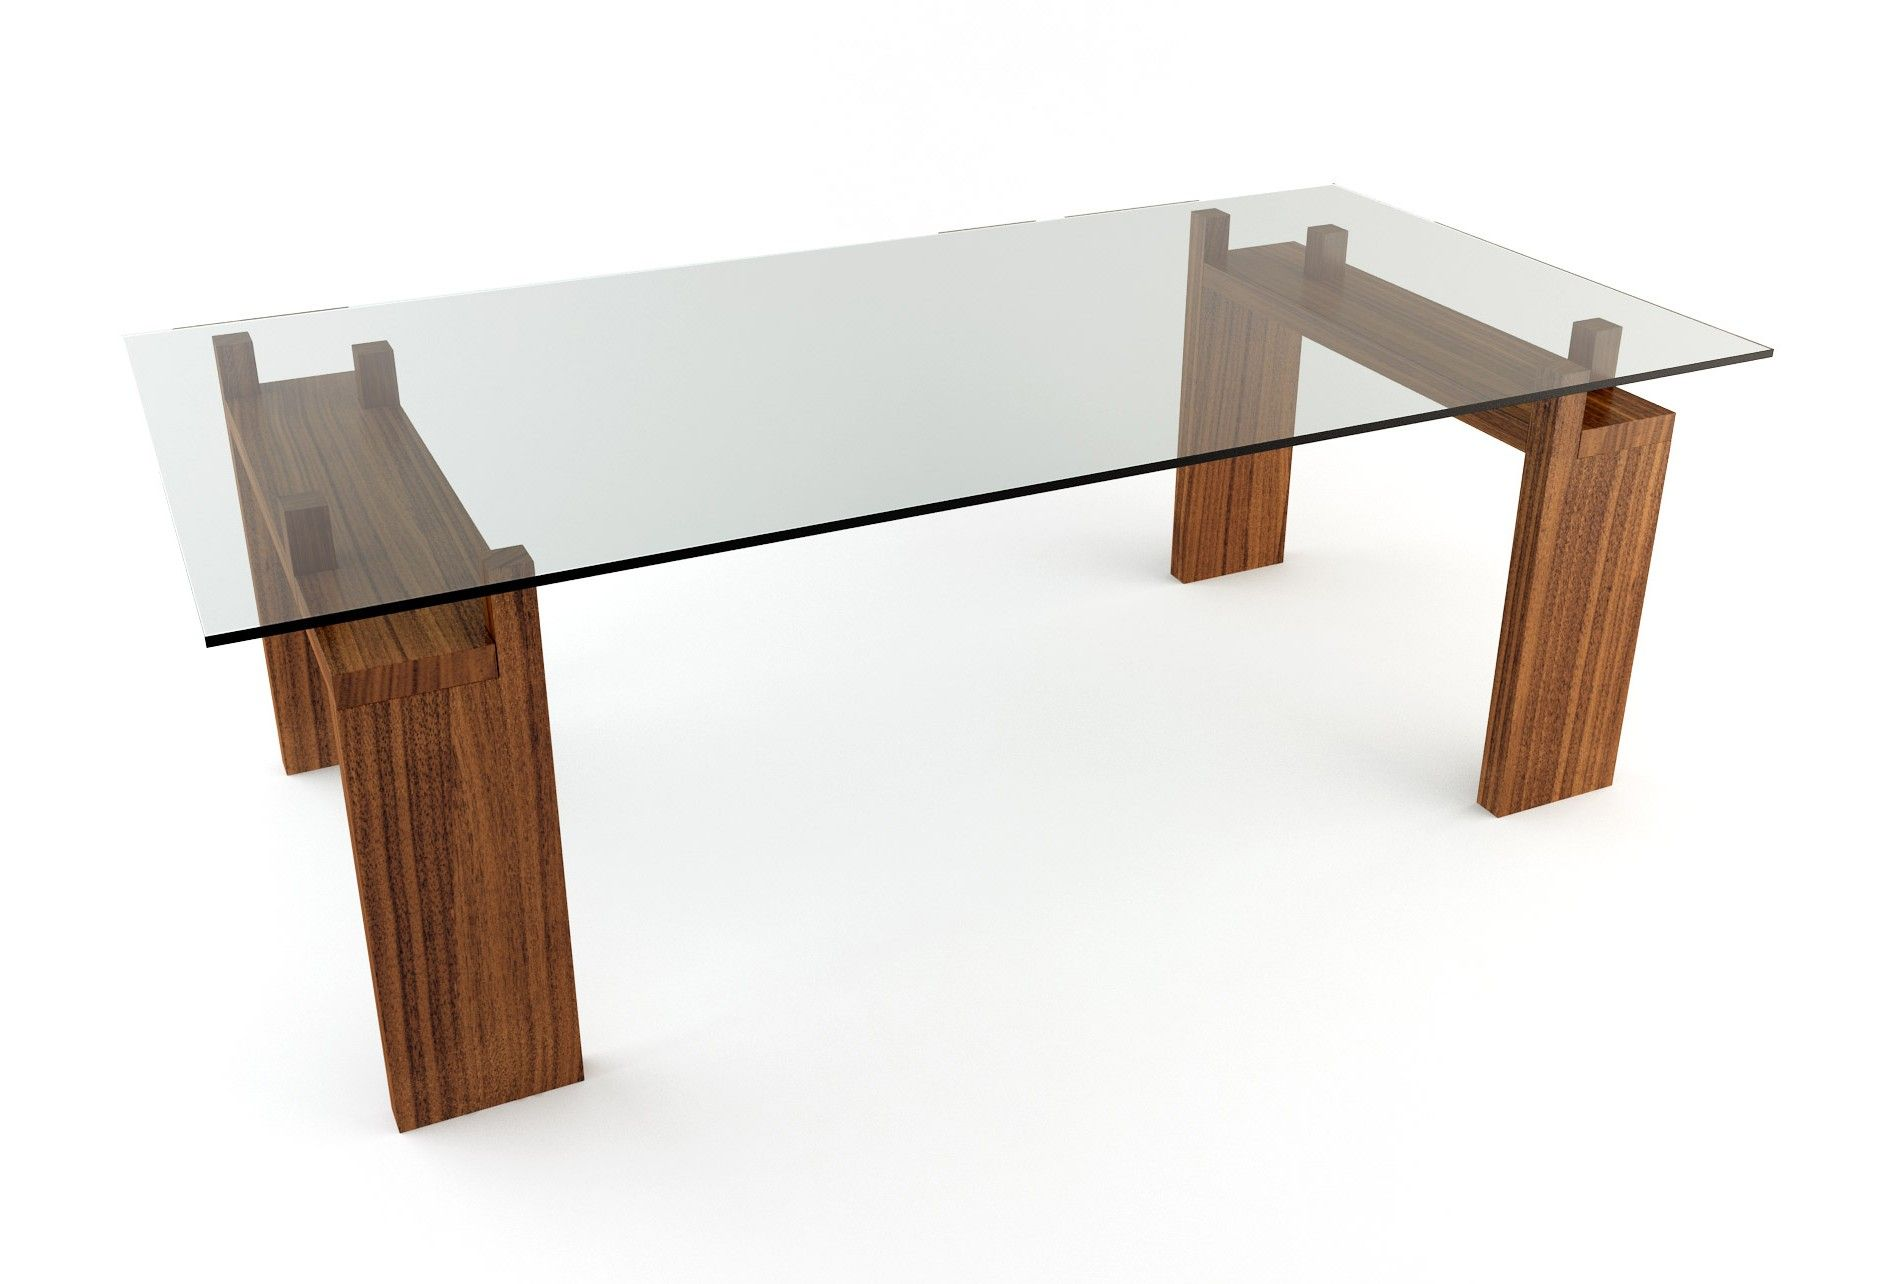 Winsome Glass Top Wood Base Coffee Table and glass top dining ...